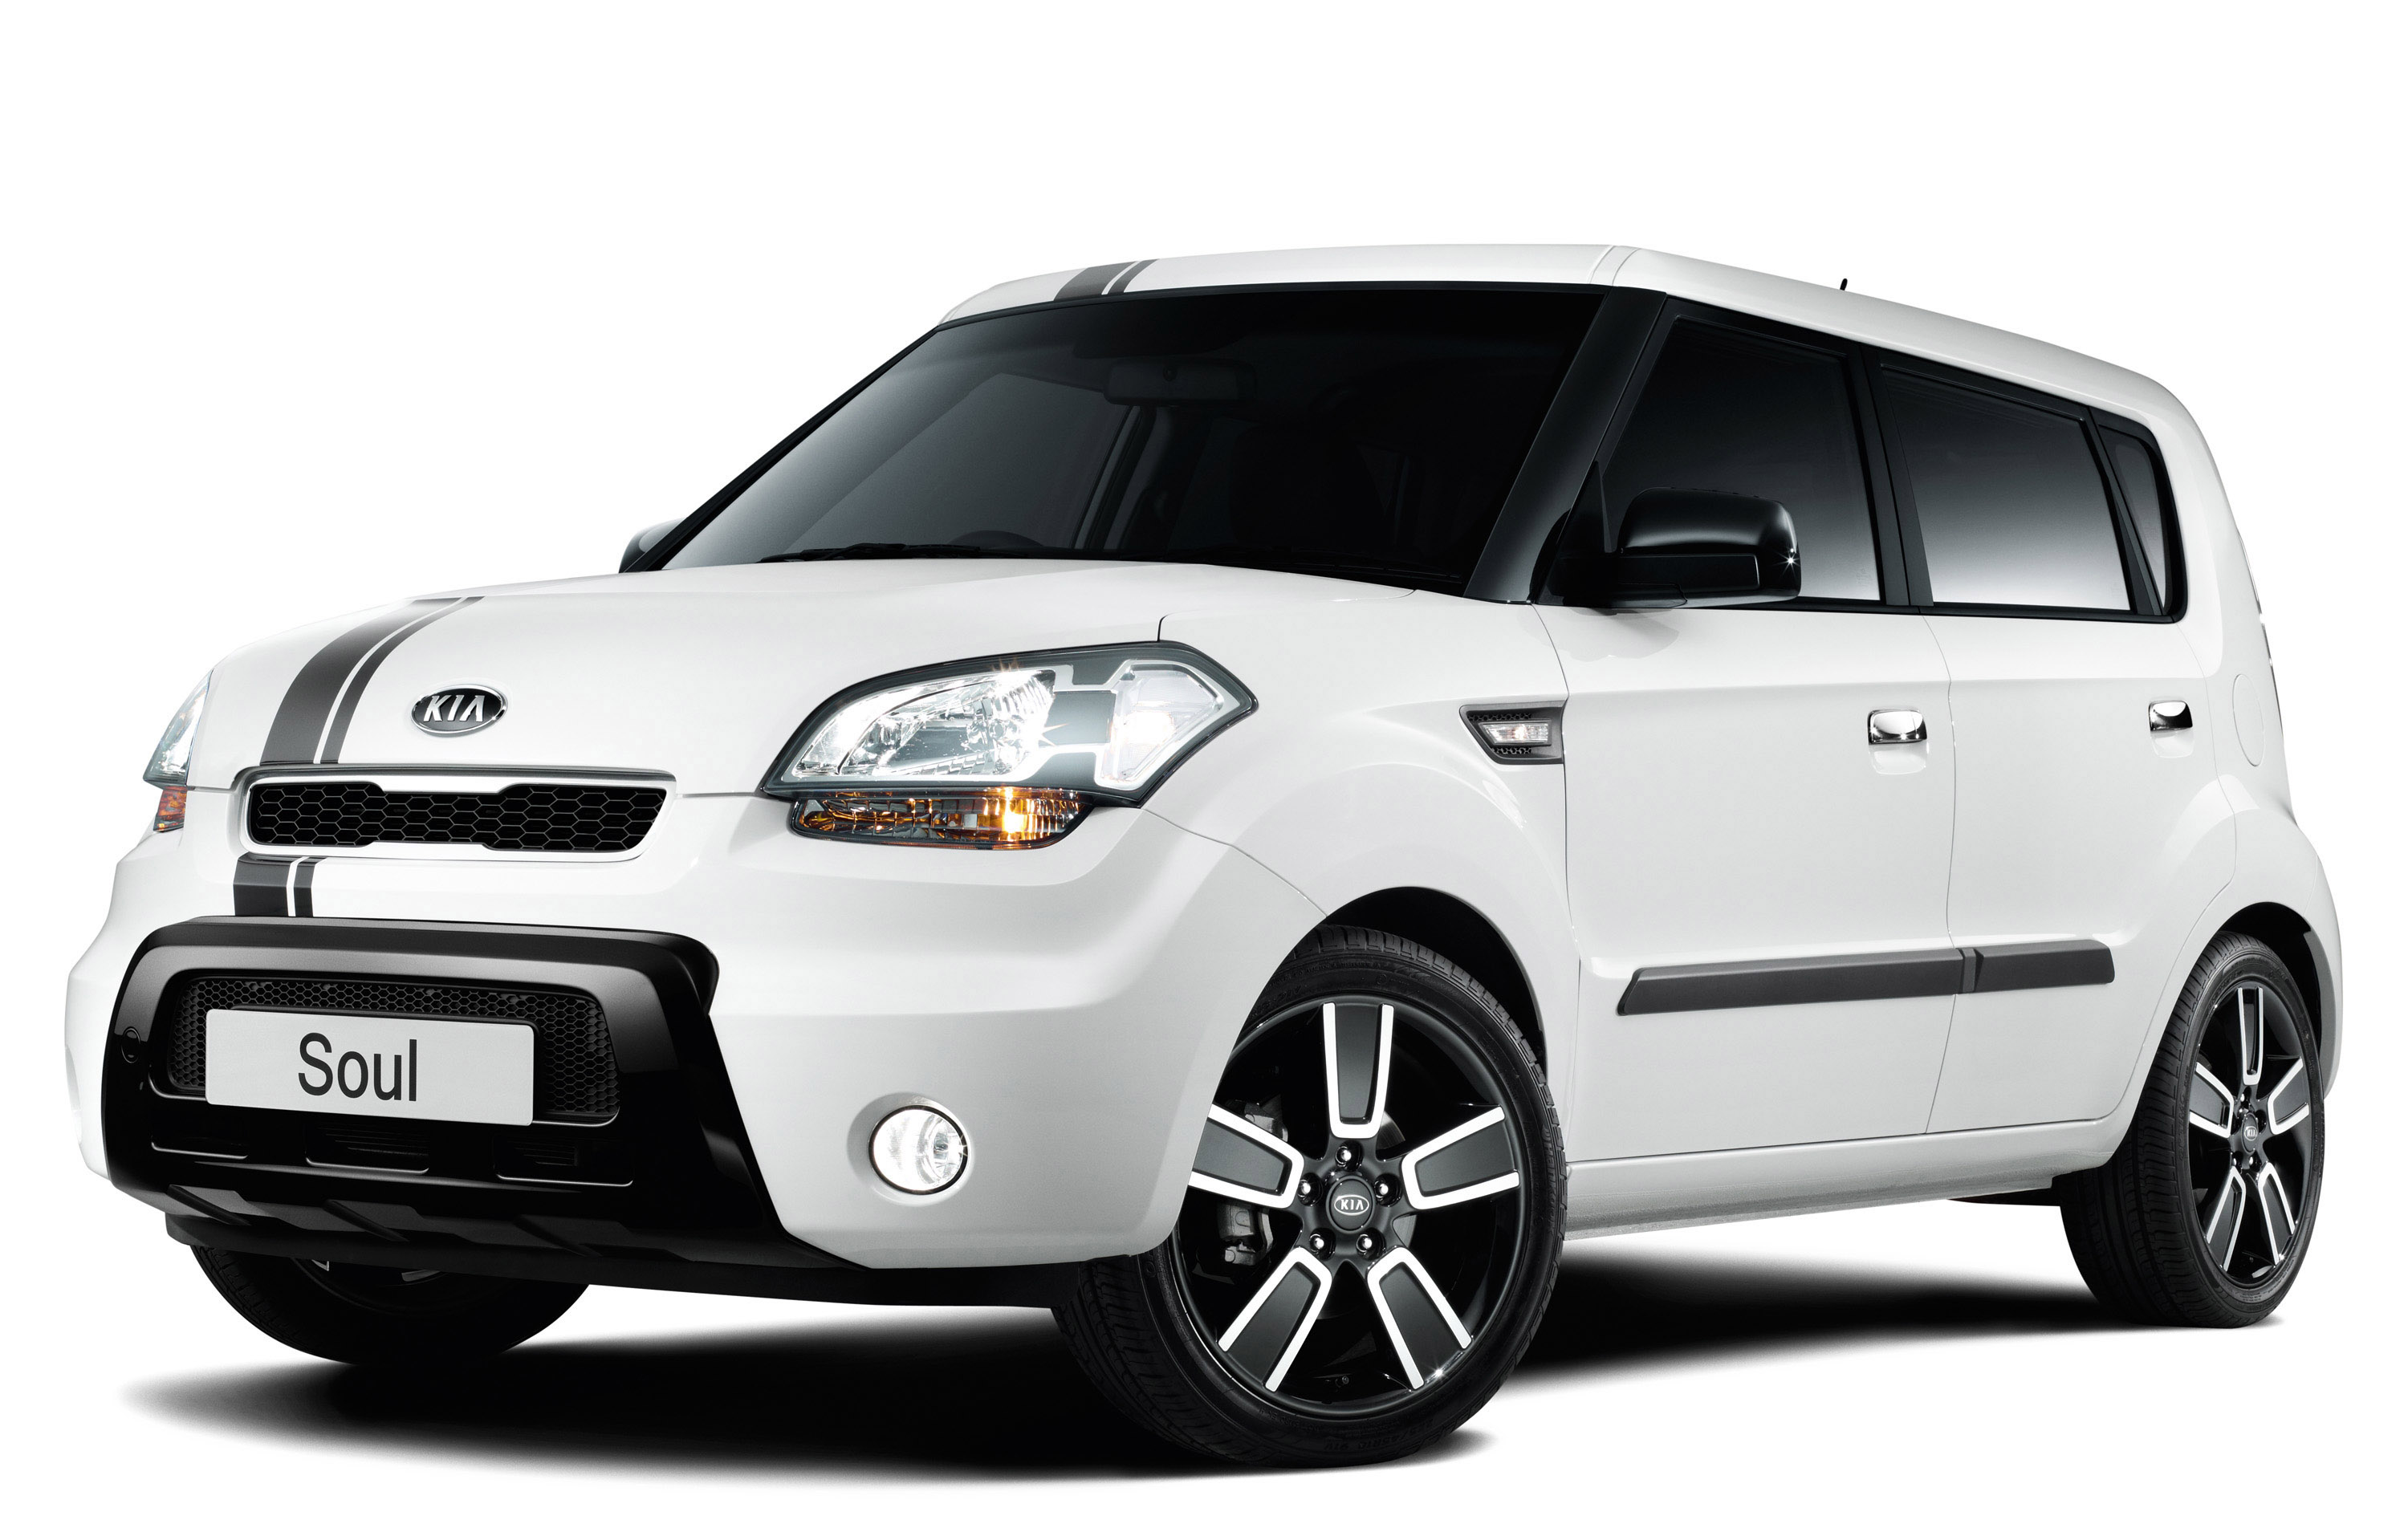 2010 kia soul echo more style and luxury. Black Bedroom Furniture Sets. Home Design Ideas